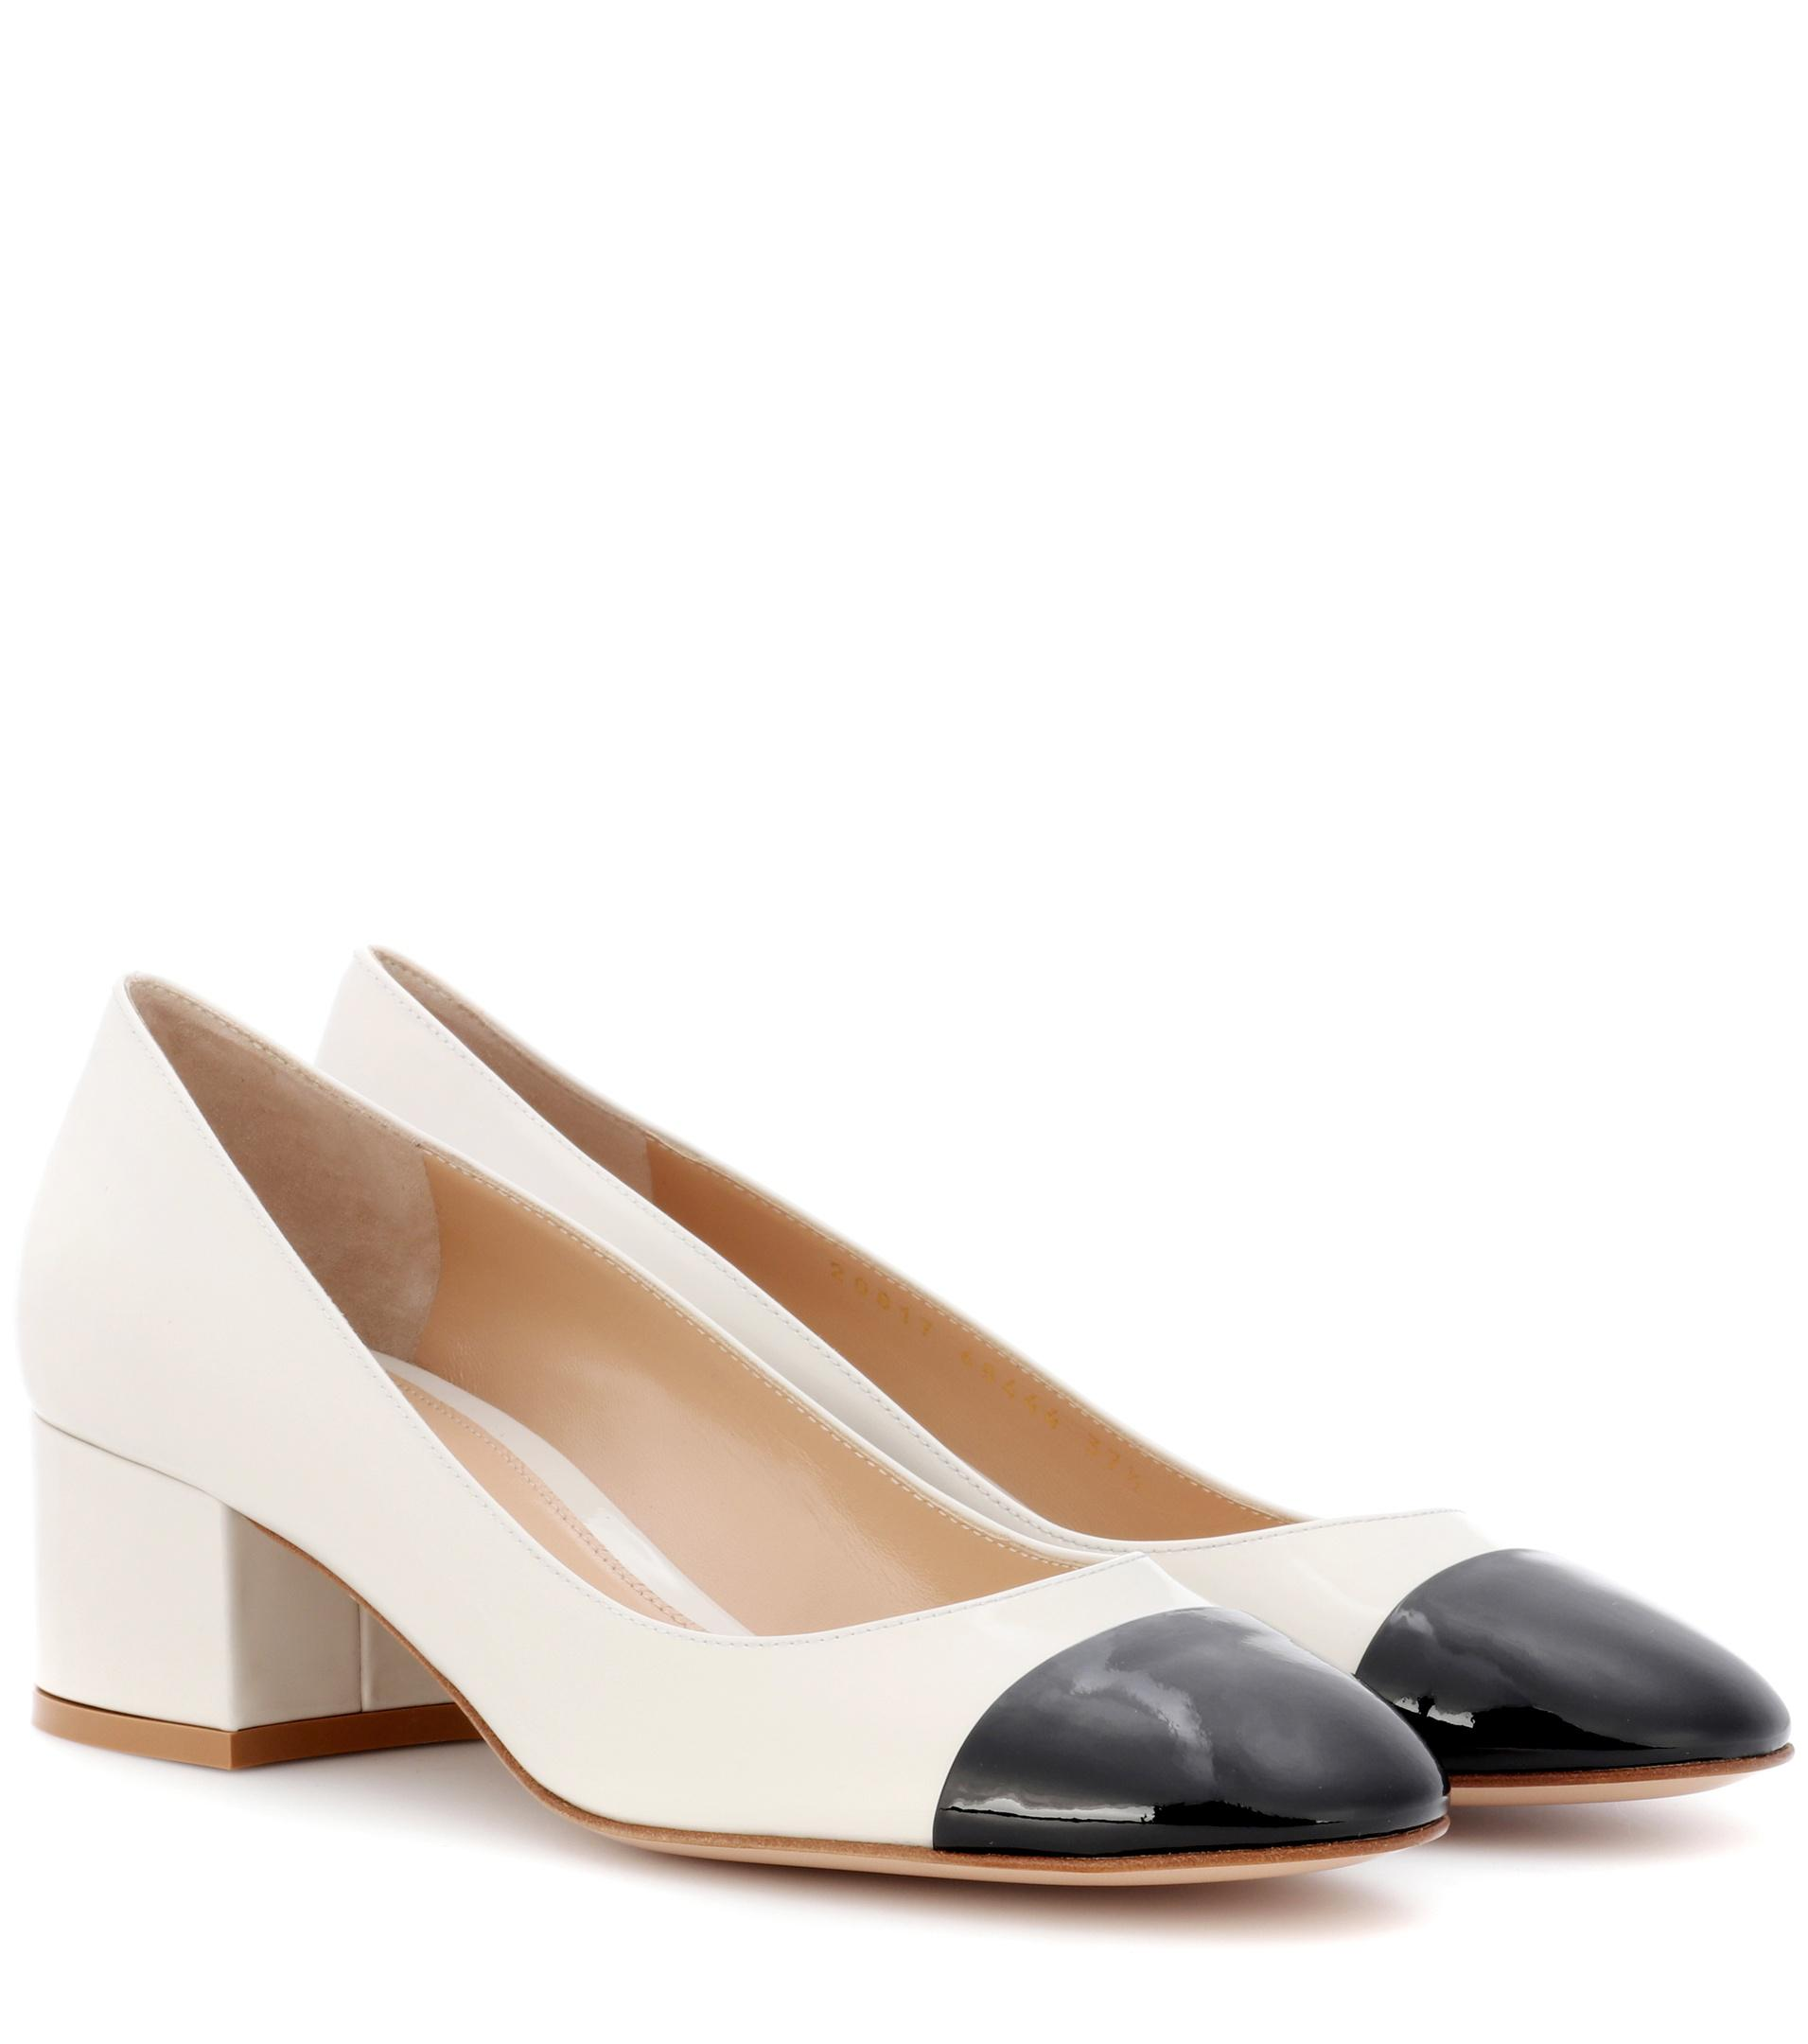 discount in China Gianvito Rossi contrast toe pumps how much online dpjXS